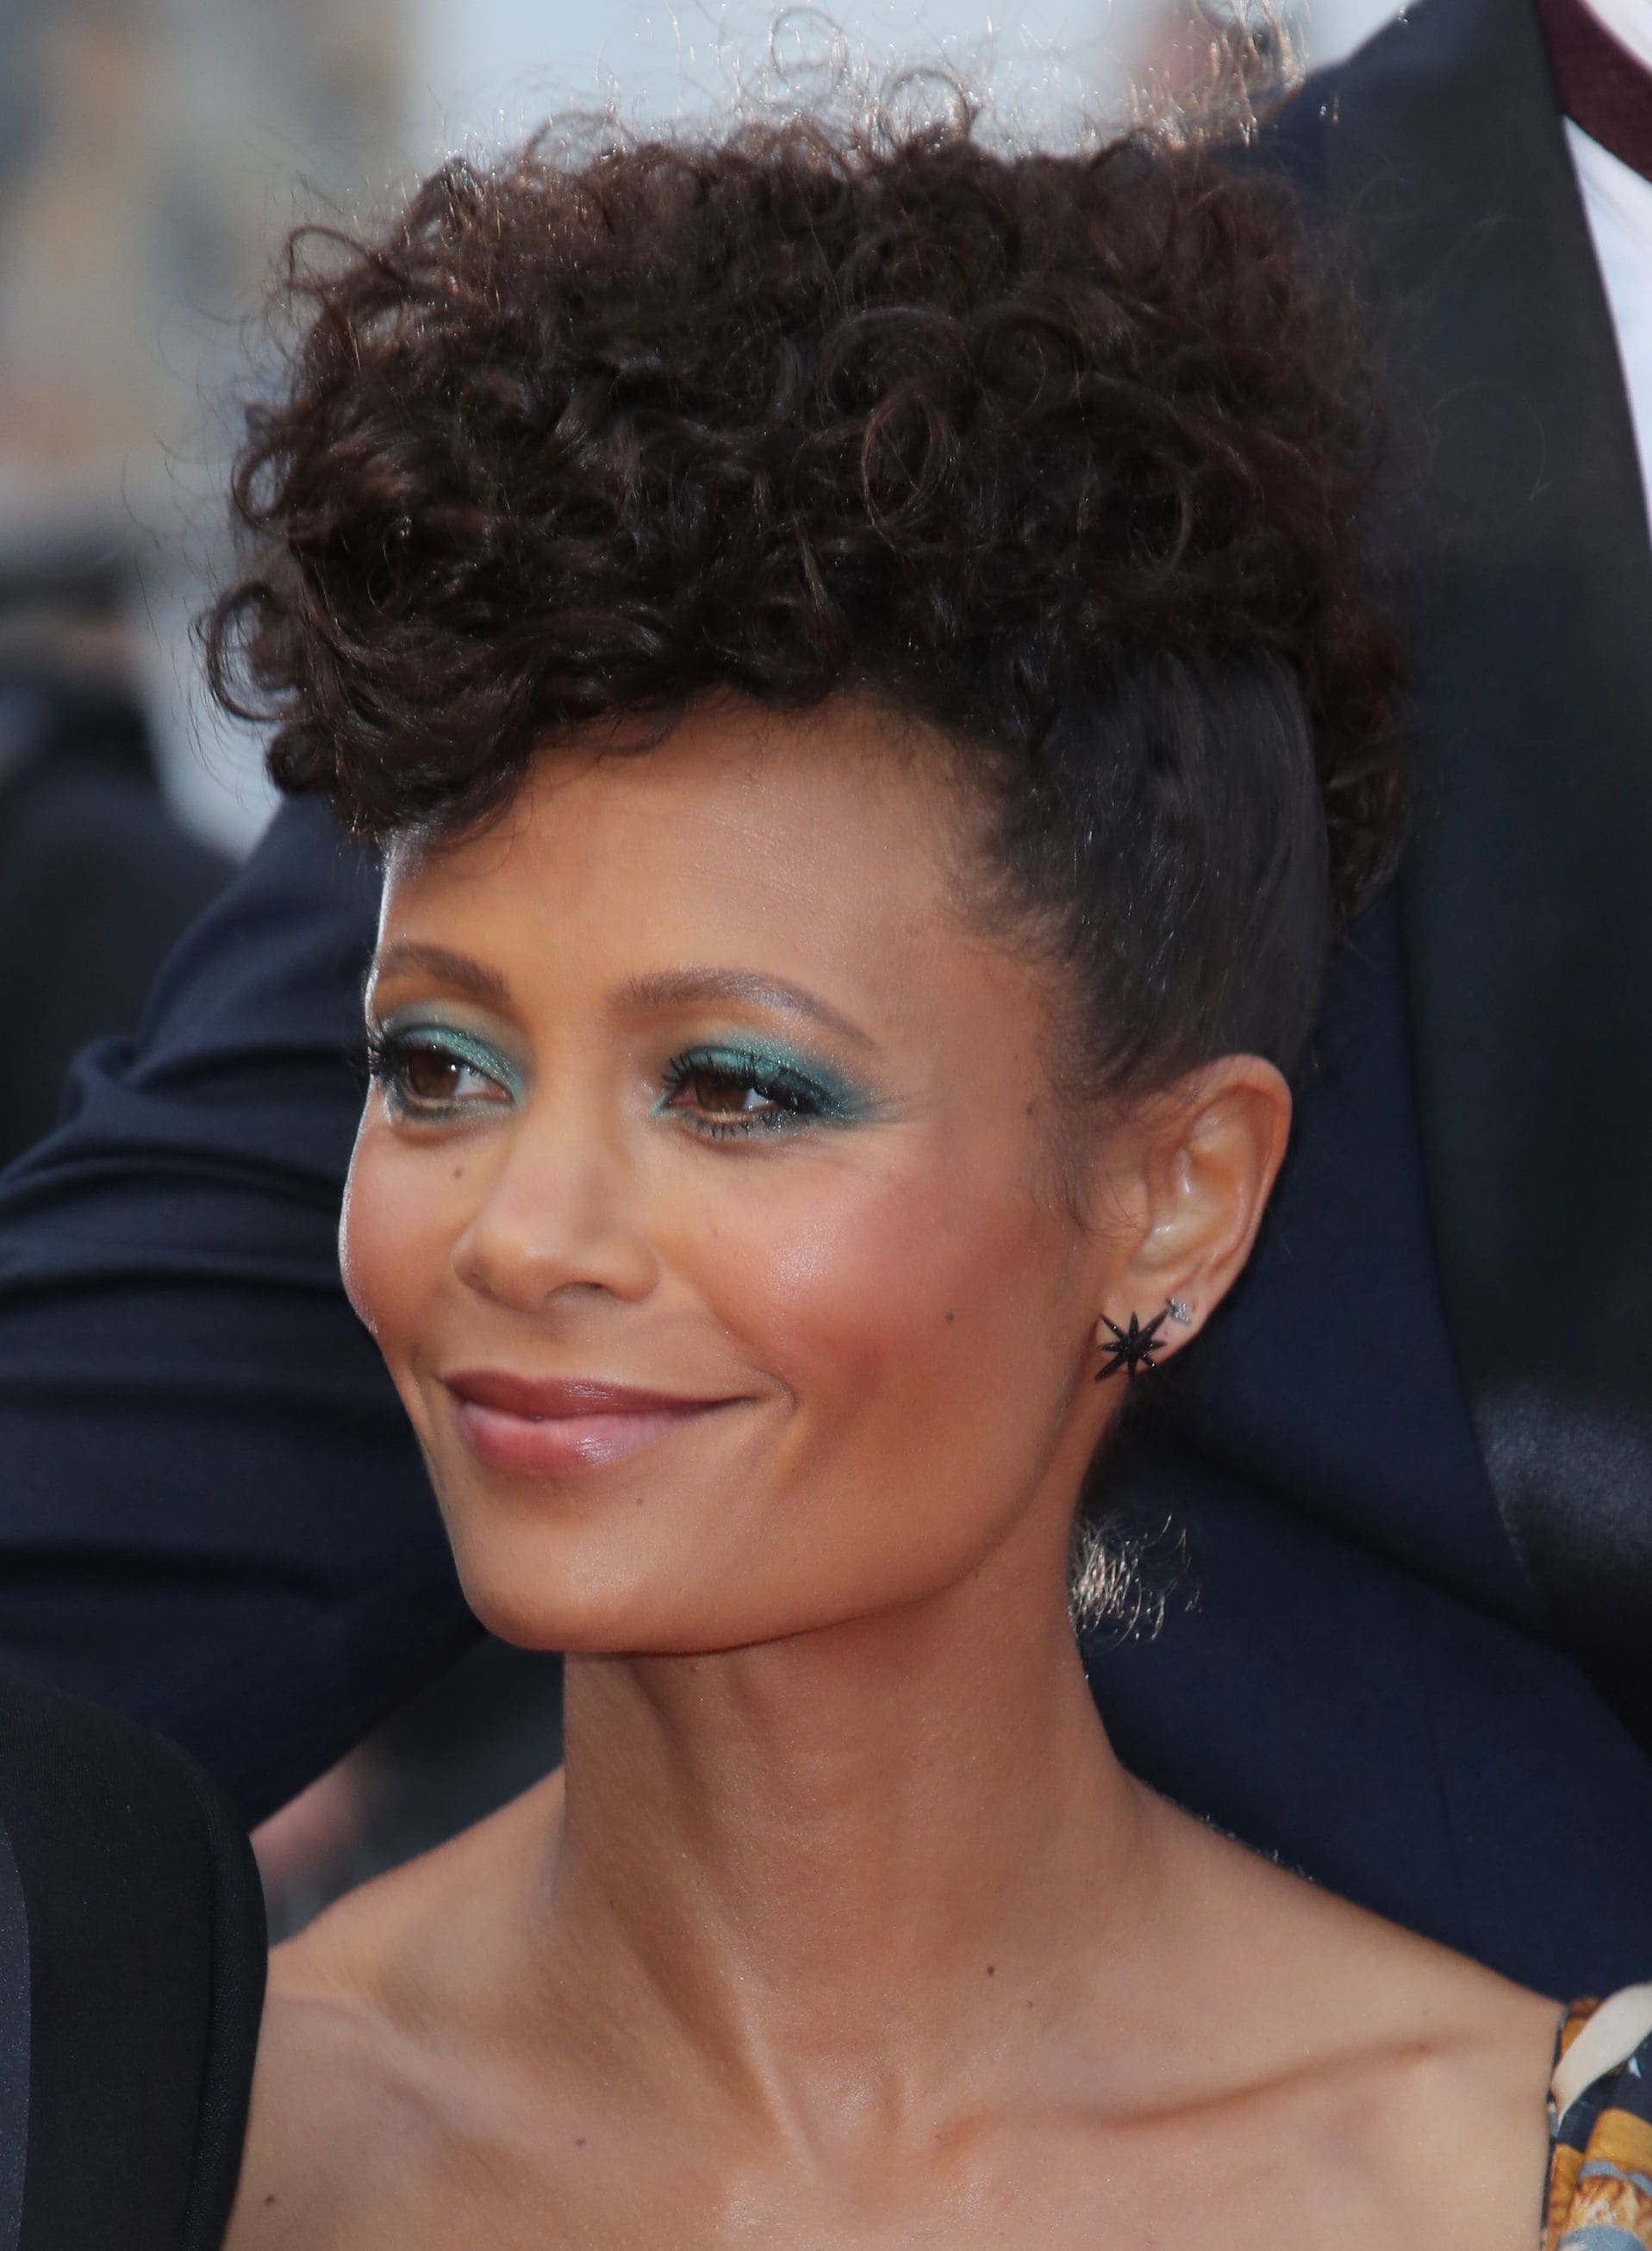 Curly hair hairstyles: Thandie Newton with dark brown naturally curly hair styled in a frohawk